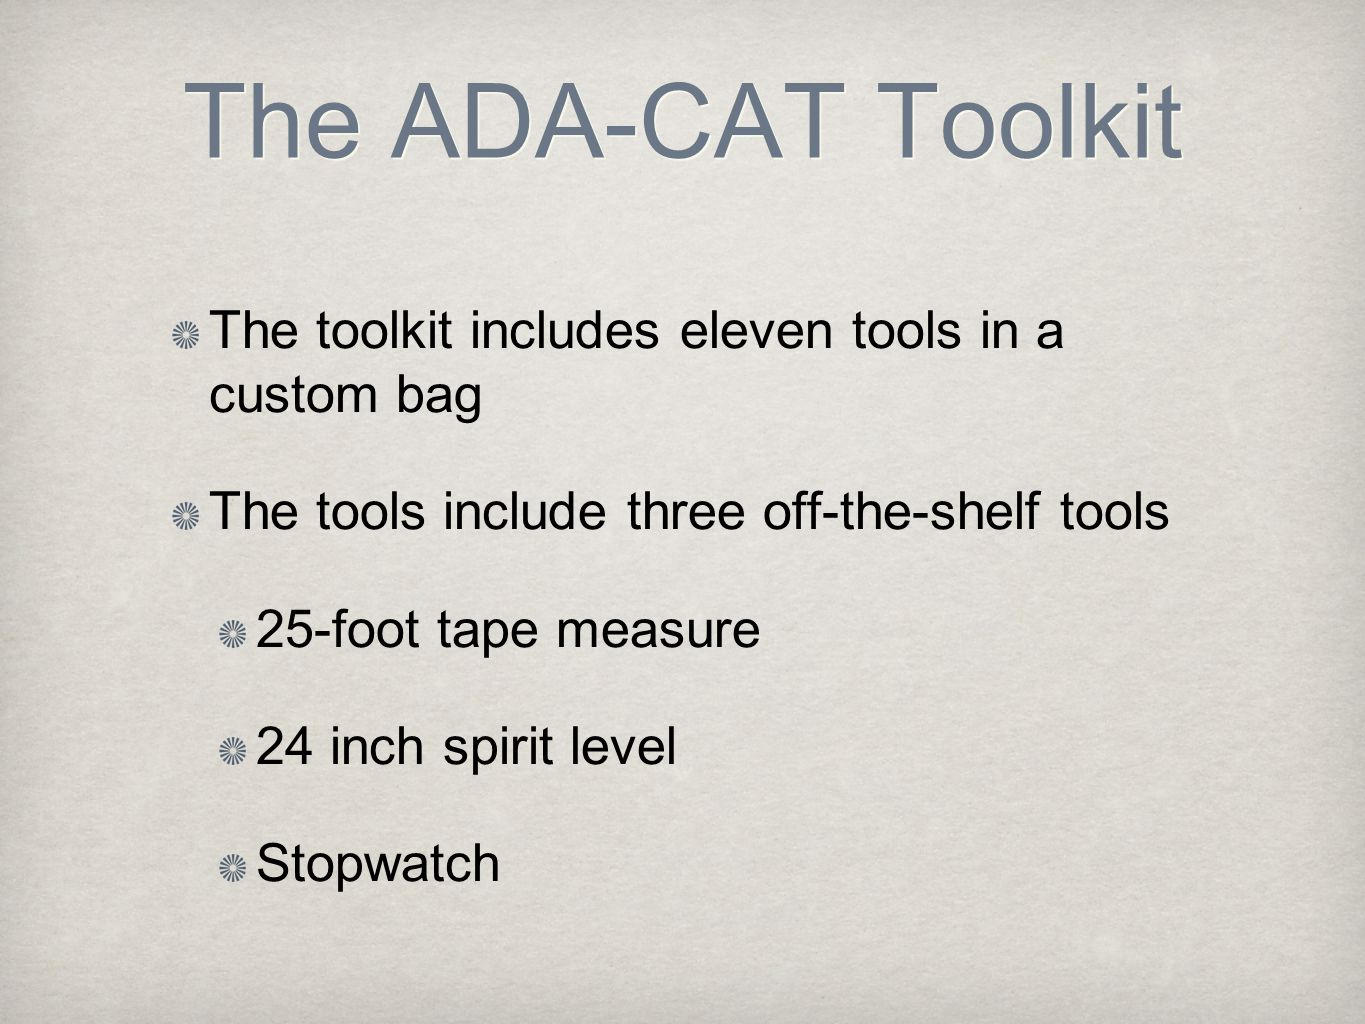 The ADA-CAT Toolkit The toolkit includes eleven tools in a custom bag The tools include three off-the-shelf tools 25-foot tape measure 24 inch spirit